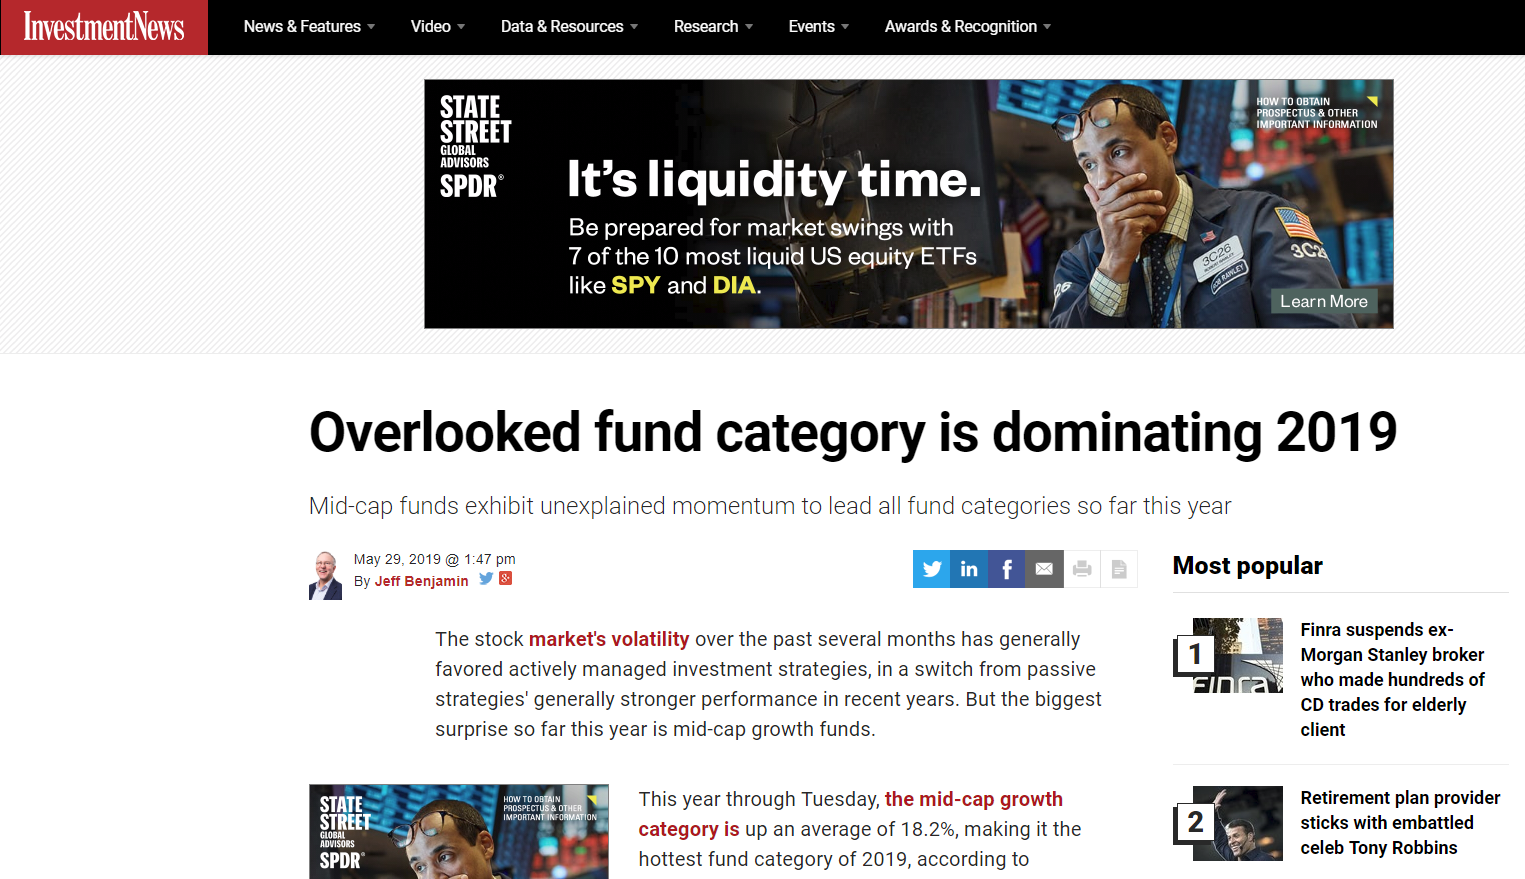 Overlooked fund category is dominating 2019 | Oaktree Financial Advisors